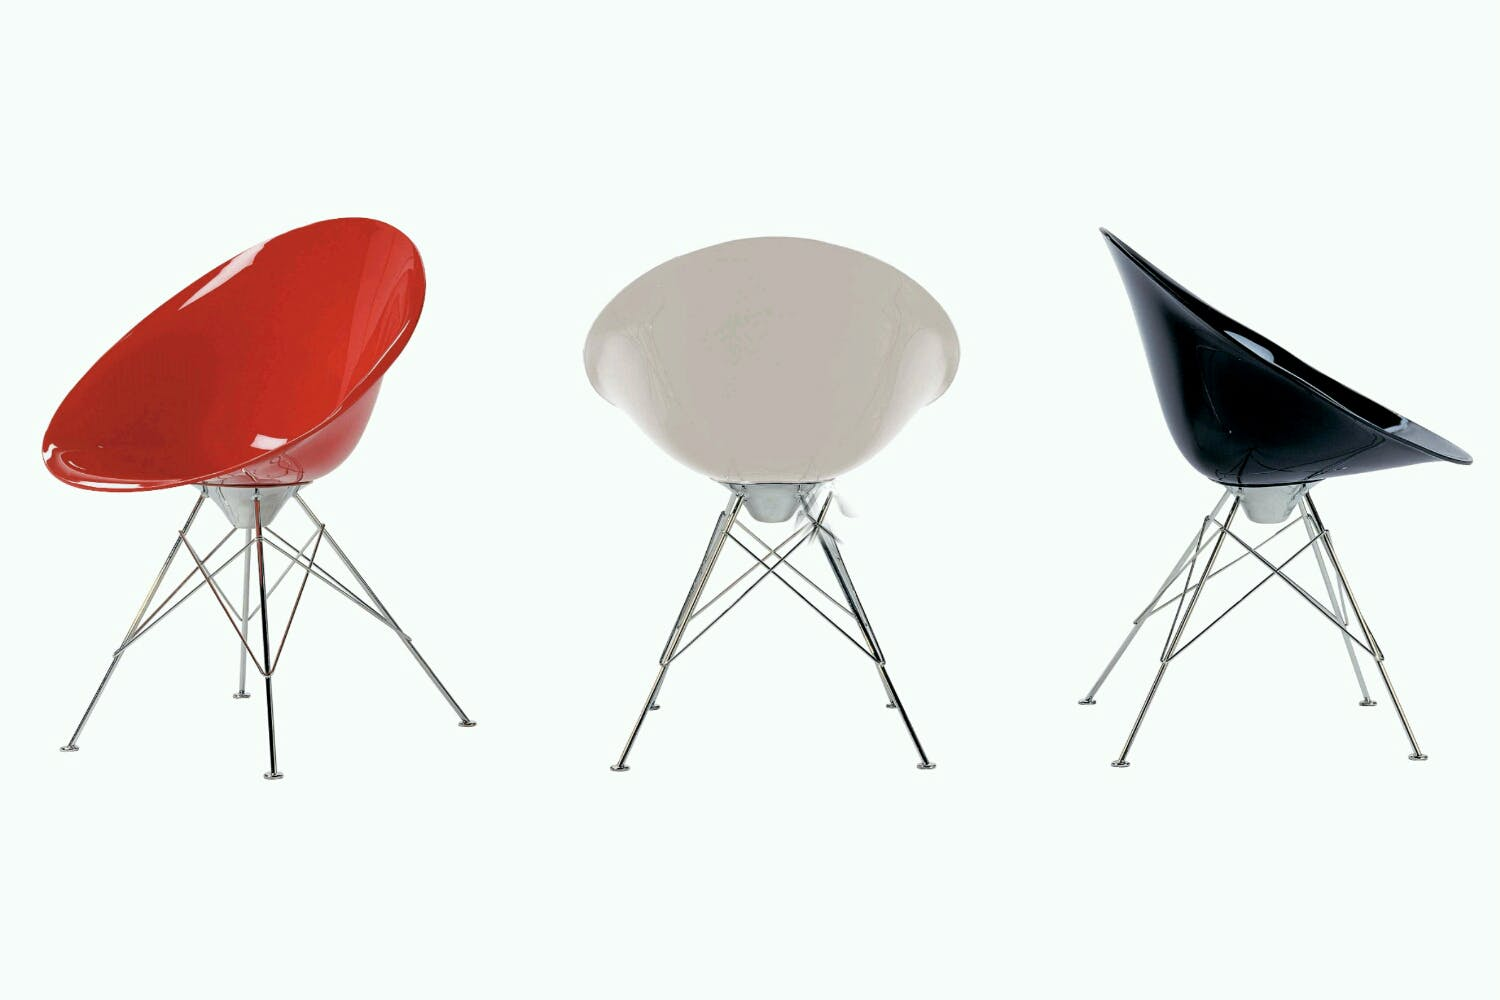 Ero S Chair On Feet By Philippe Starck For Kartell